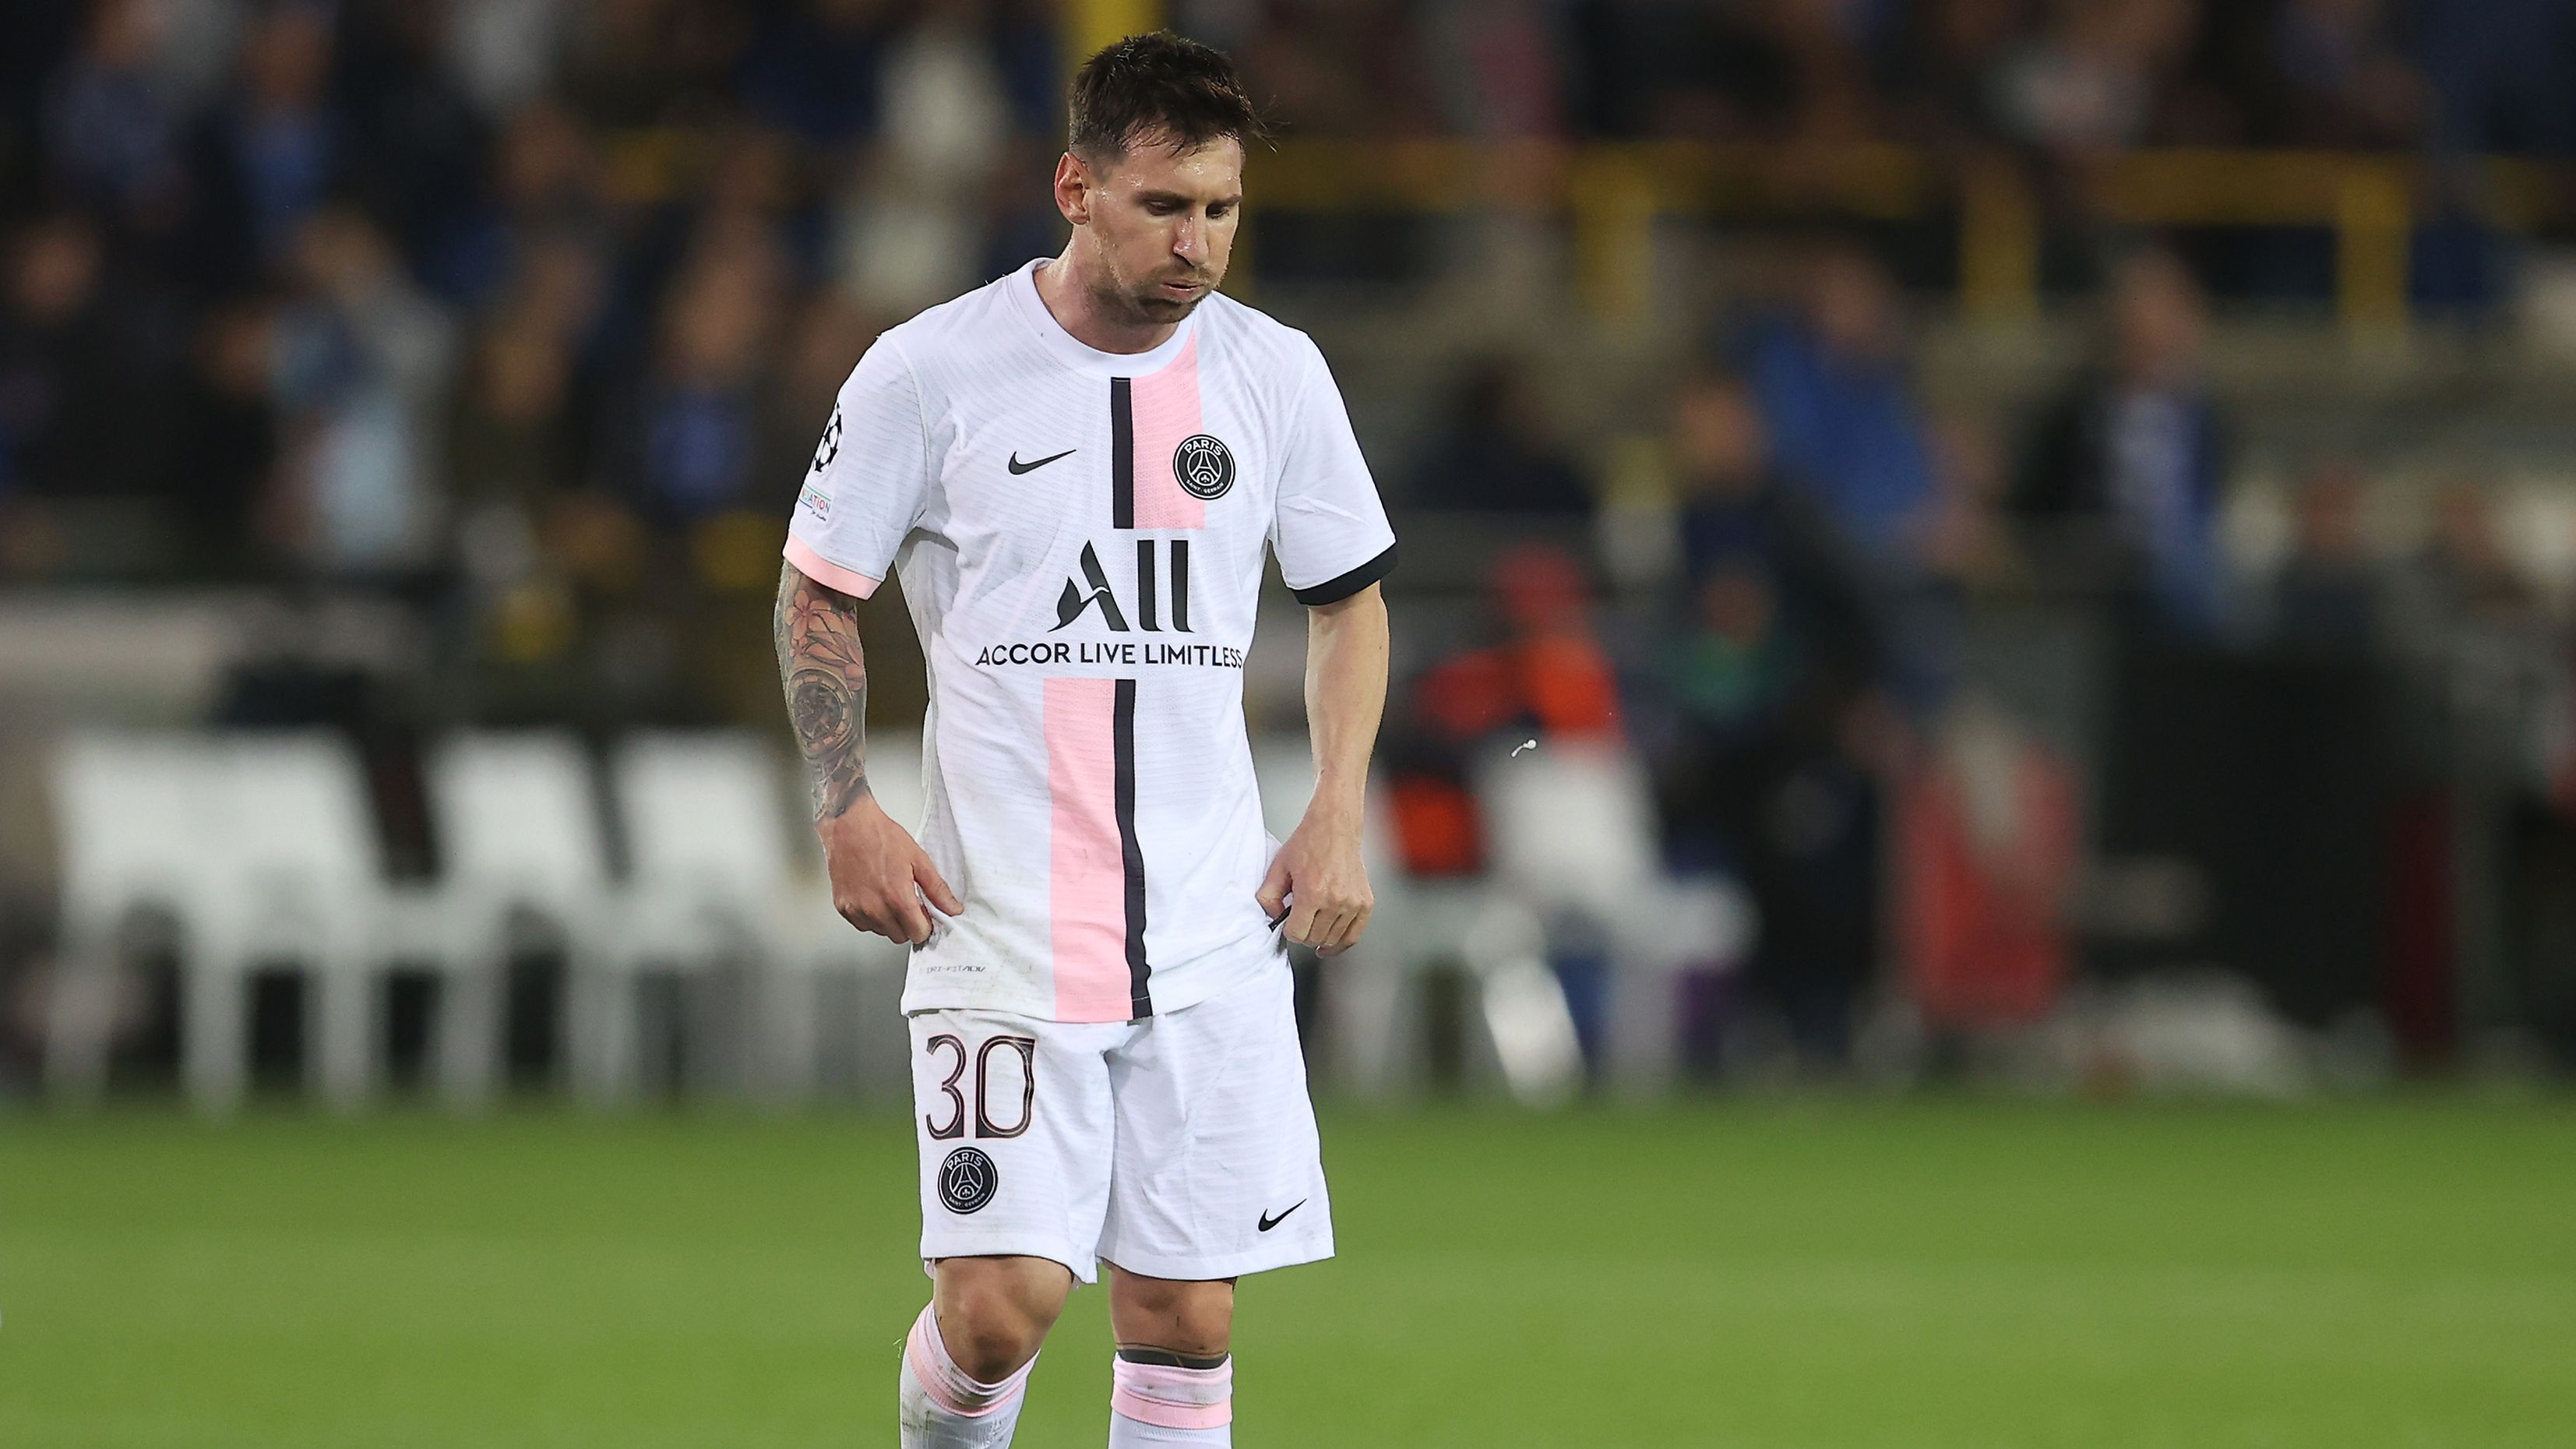 Lionel Messi substituted on home debut as Paris Saint-Germain score late winner